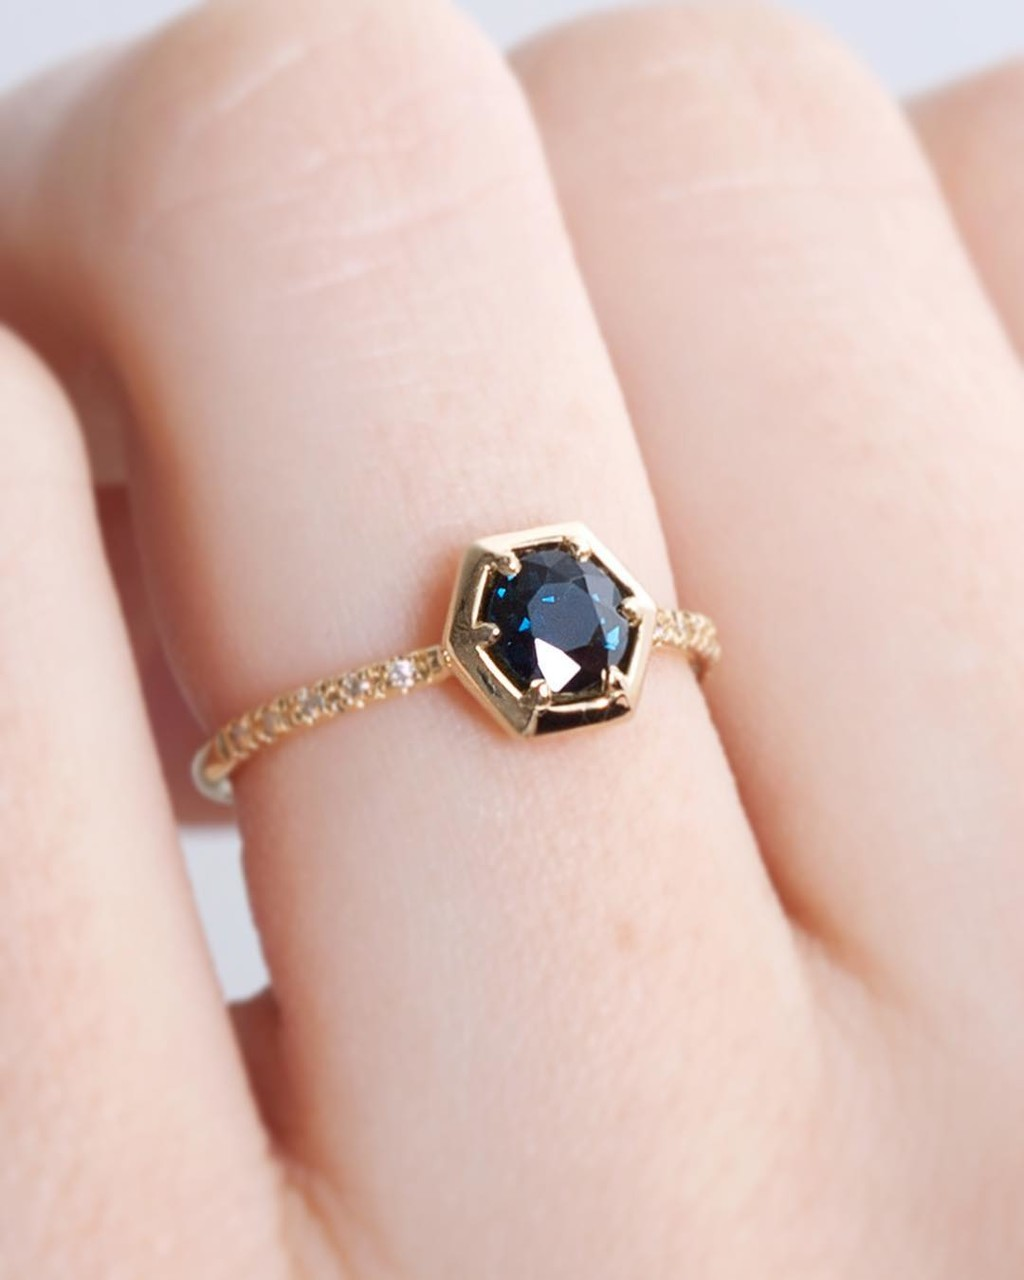 This Sapphire is such a beautiful saturated deep blue color. 💙✨🌟Set in our low profile Harmonie Hexagon Collet frame ring